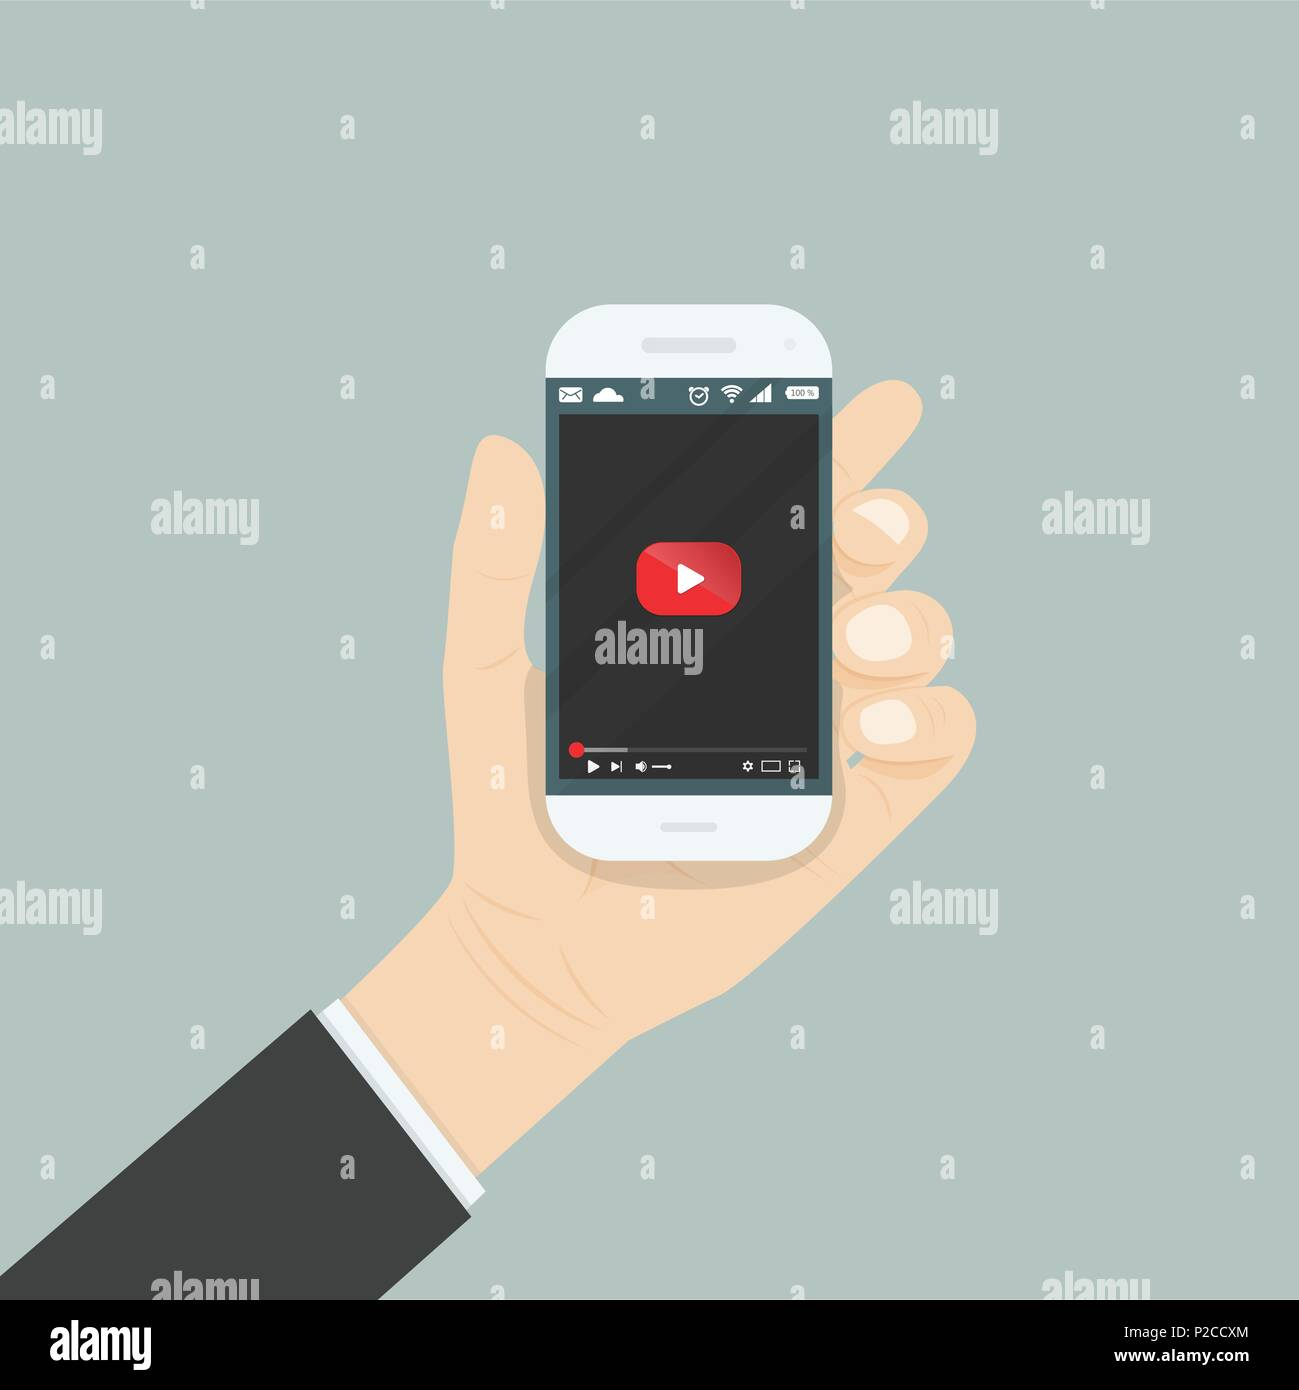 Hand holding smartphone with video player for website on the screen